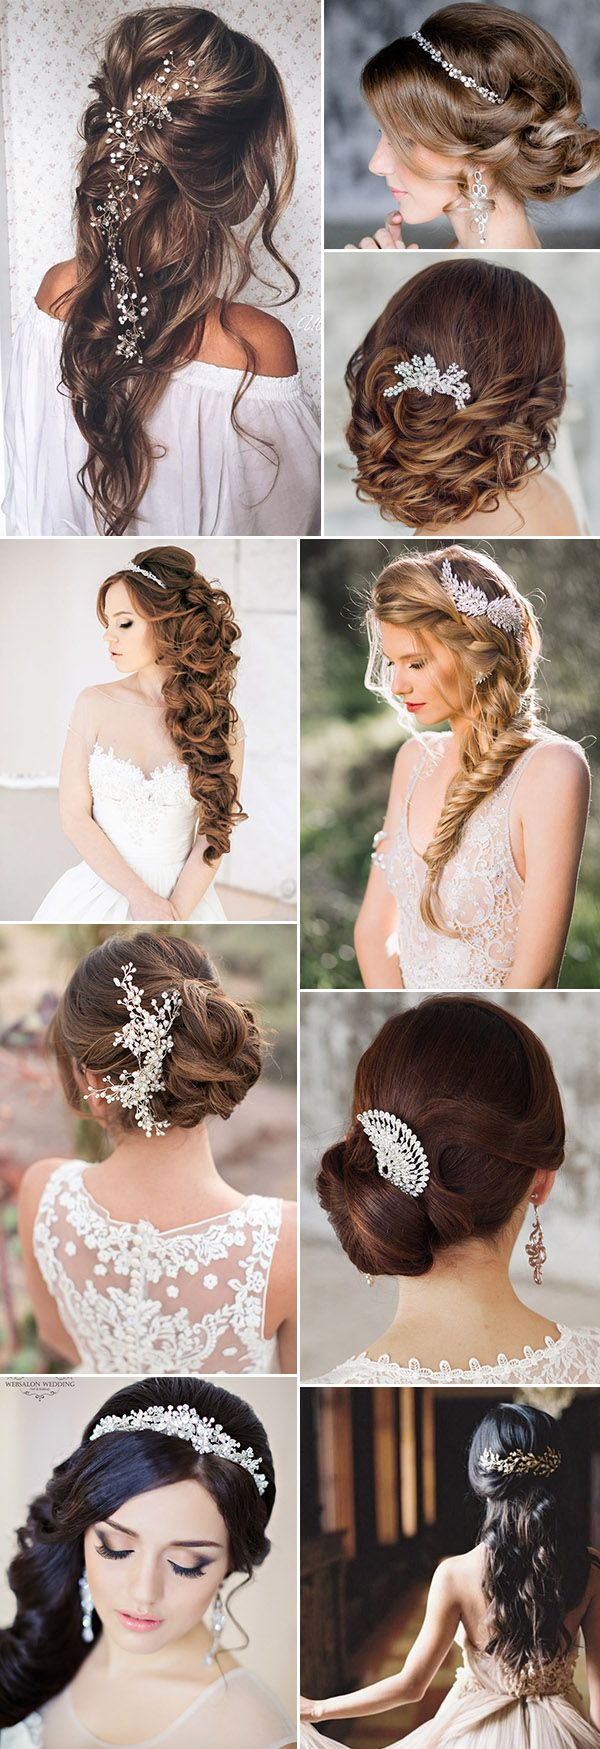 gorgeous wedding hairstyles with bridal headpieces and wedding hair accessories